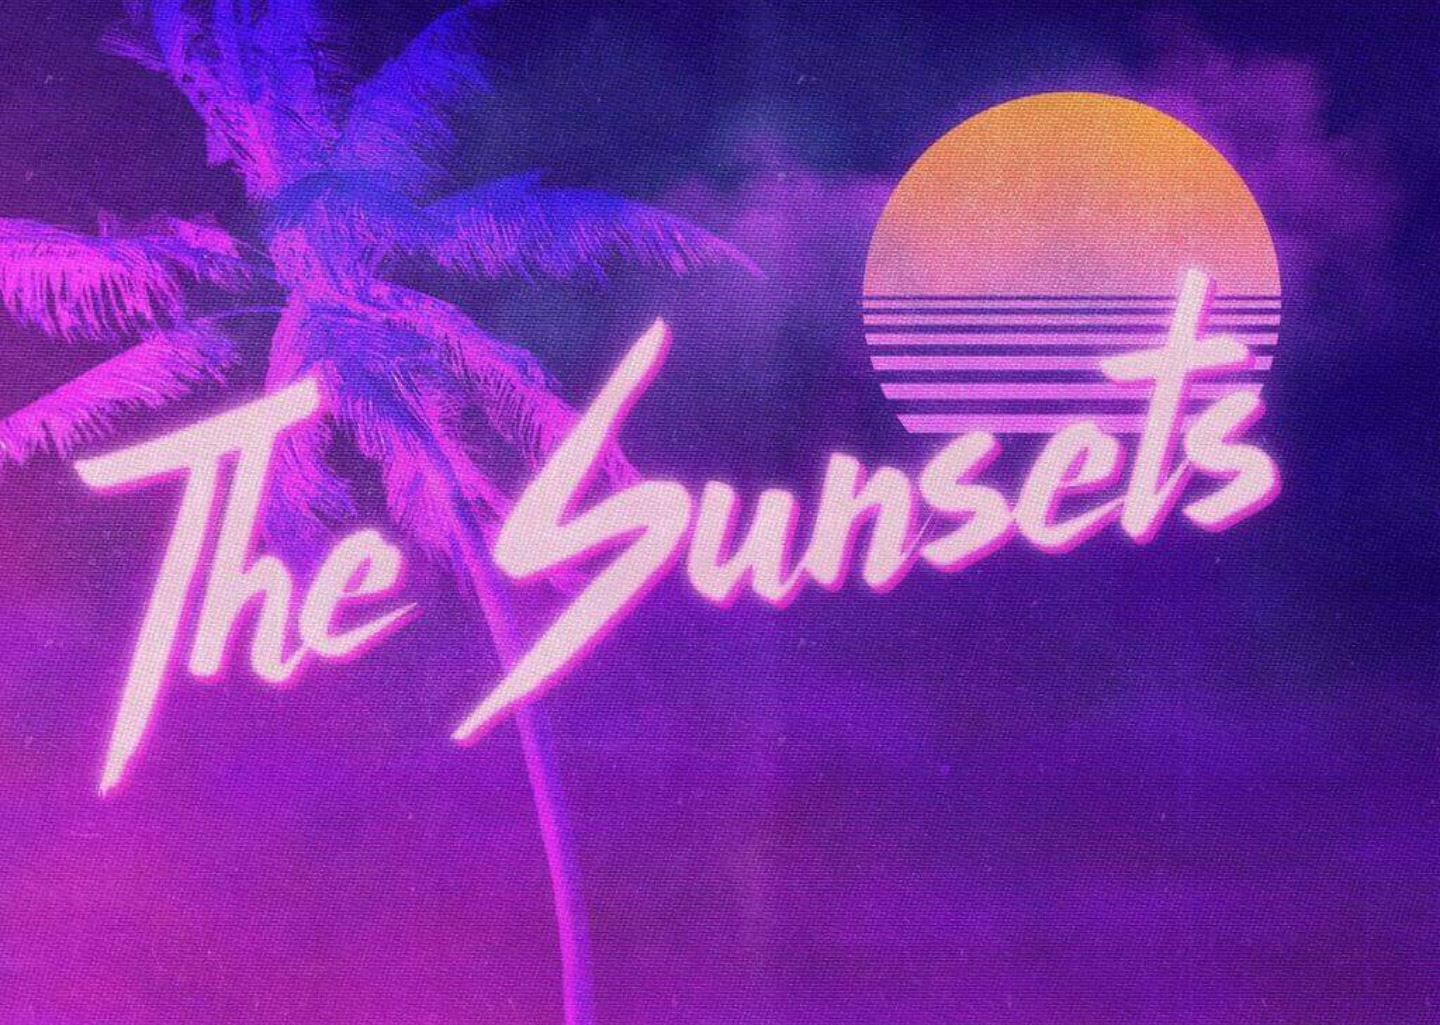 The sunsets merch store